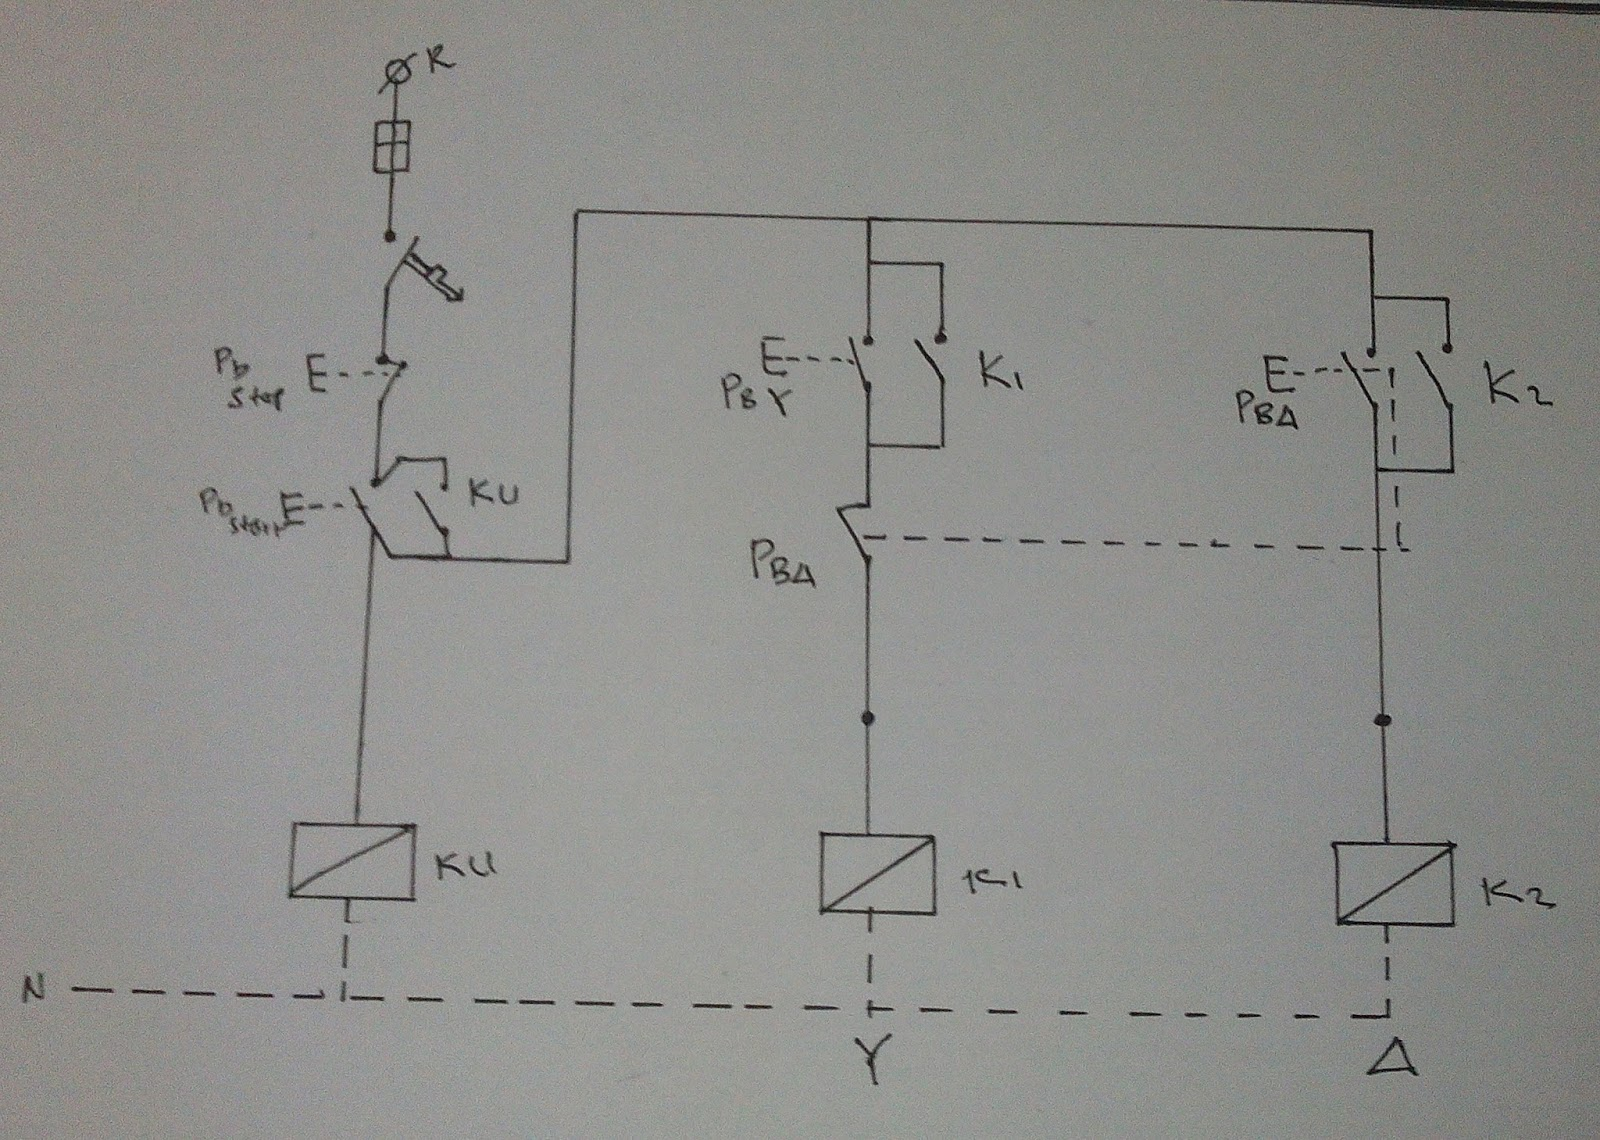 hight resolution of reversing contactor wiring diagram 3 phase 220